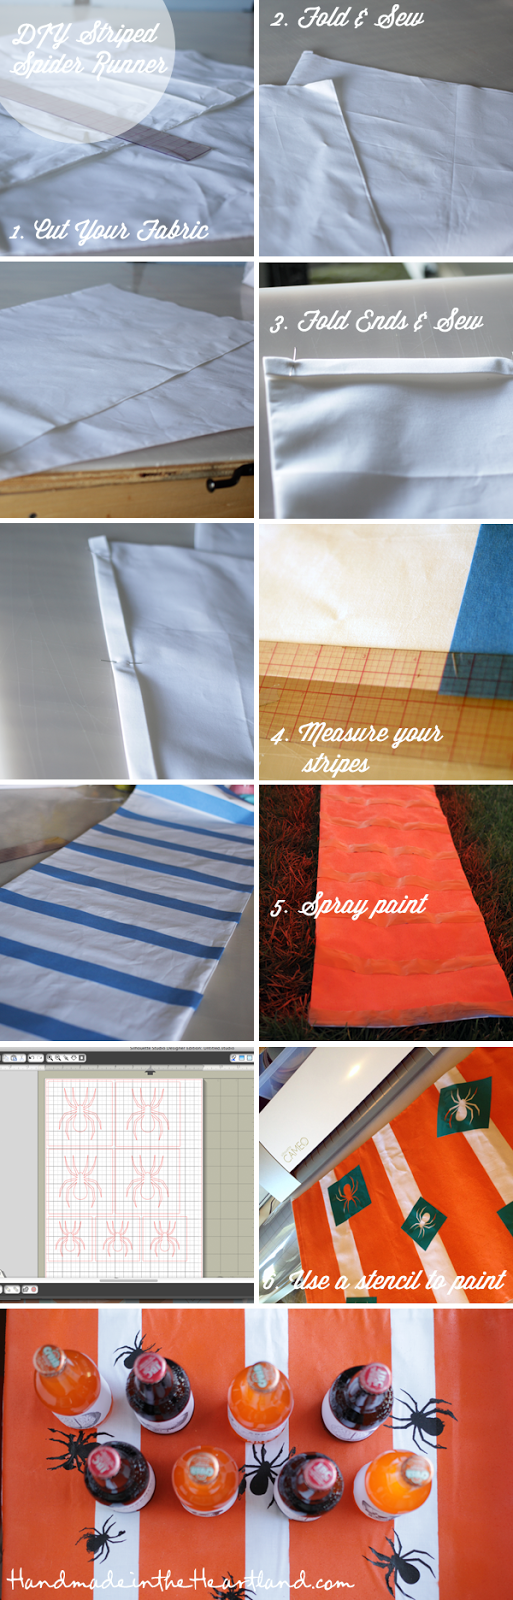 DIY Striped Spider Runner Tutorial